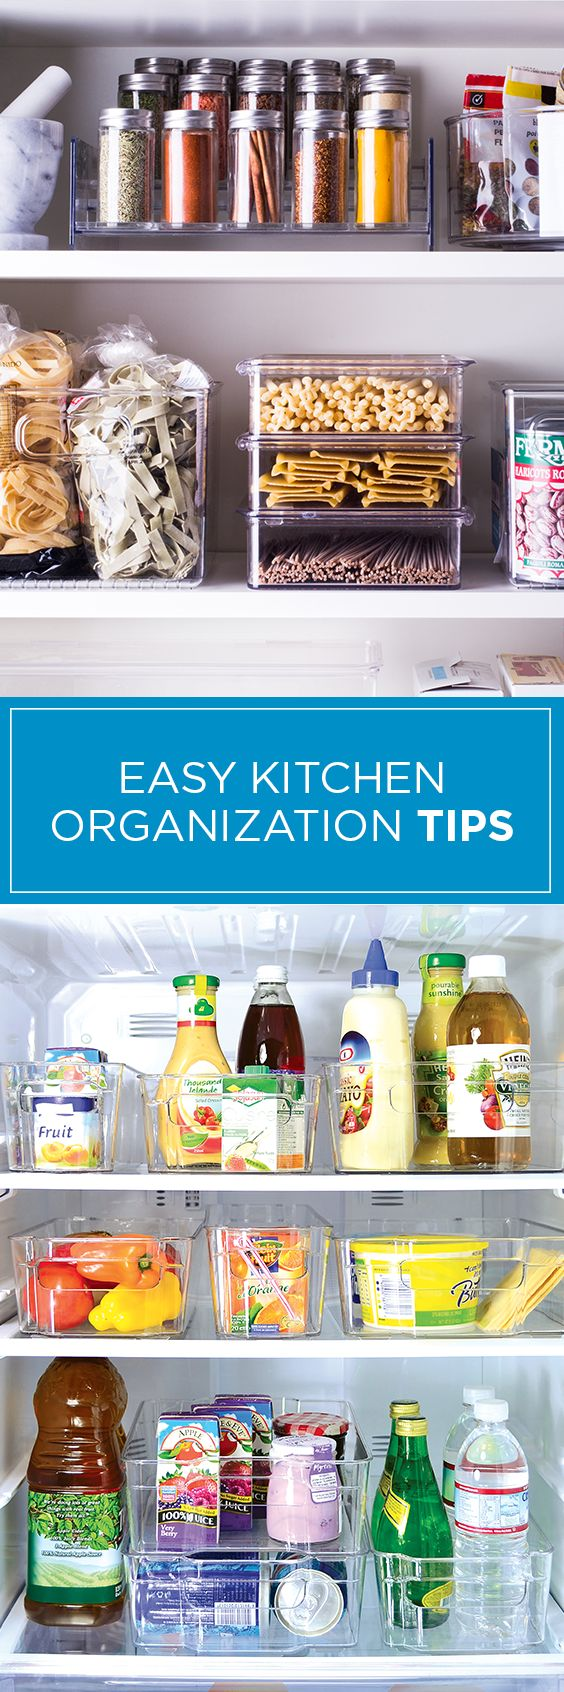 9 best How to Organize Your Home images on Pinterest | Organisation ...